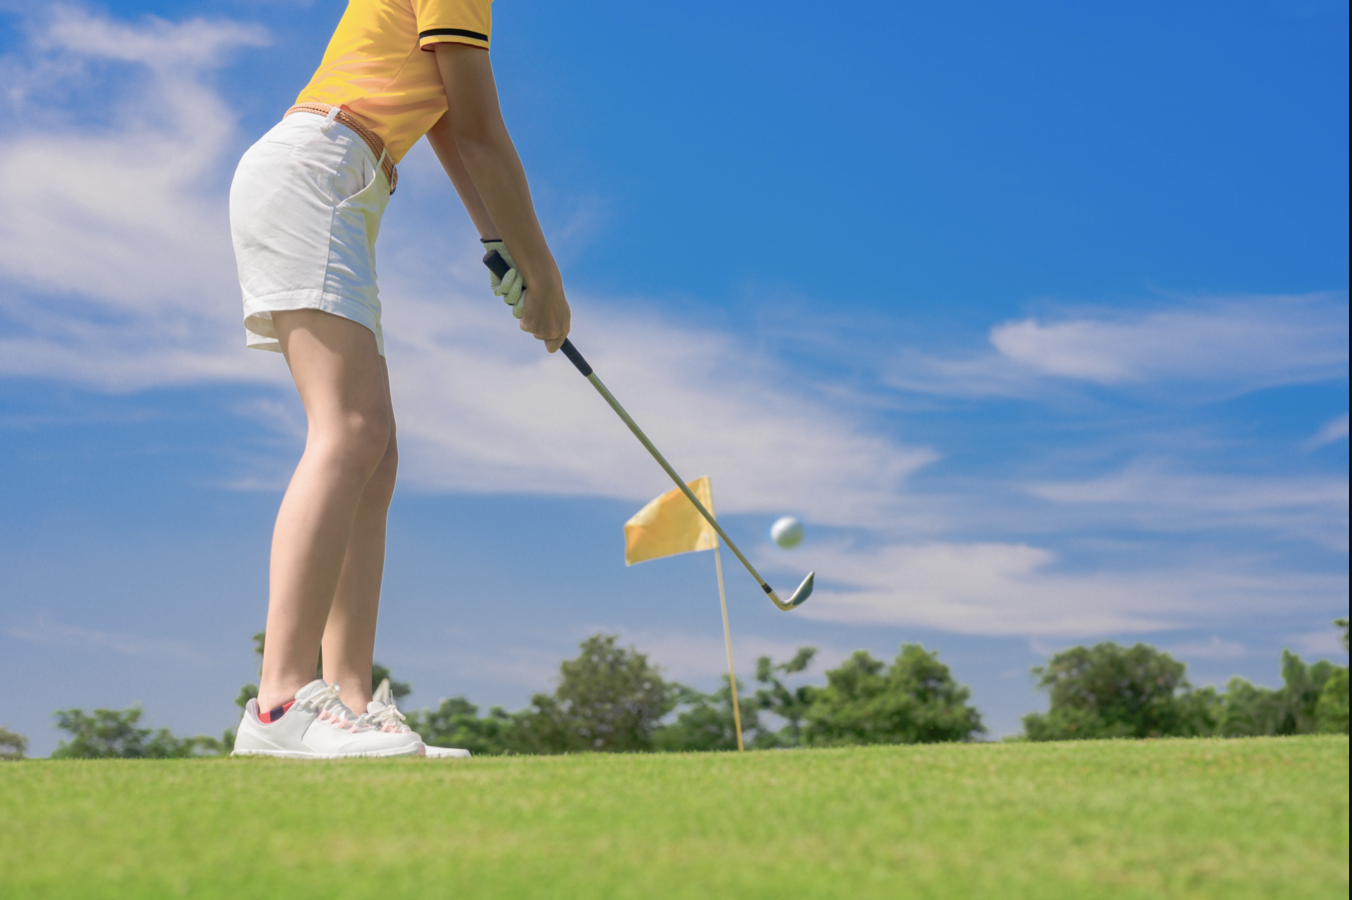 Woman in shorts about to hit a golf ball